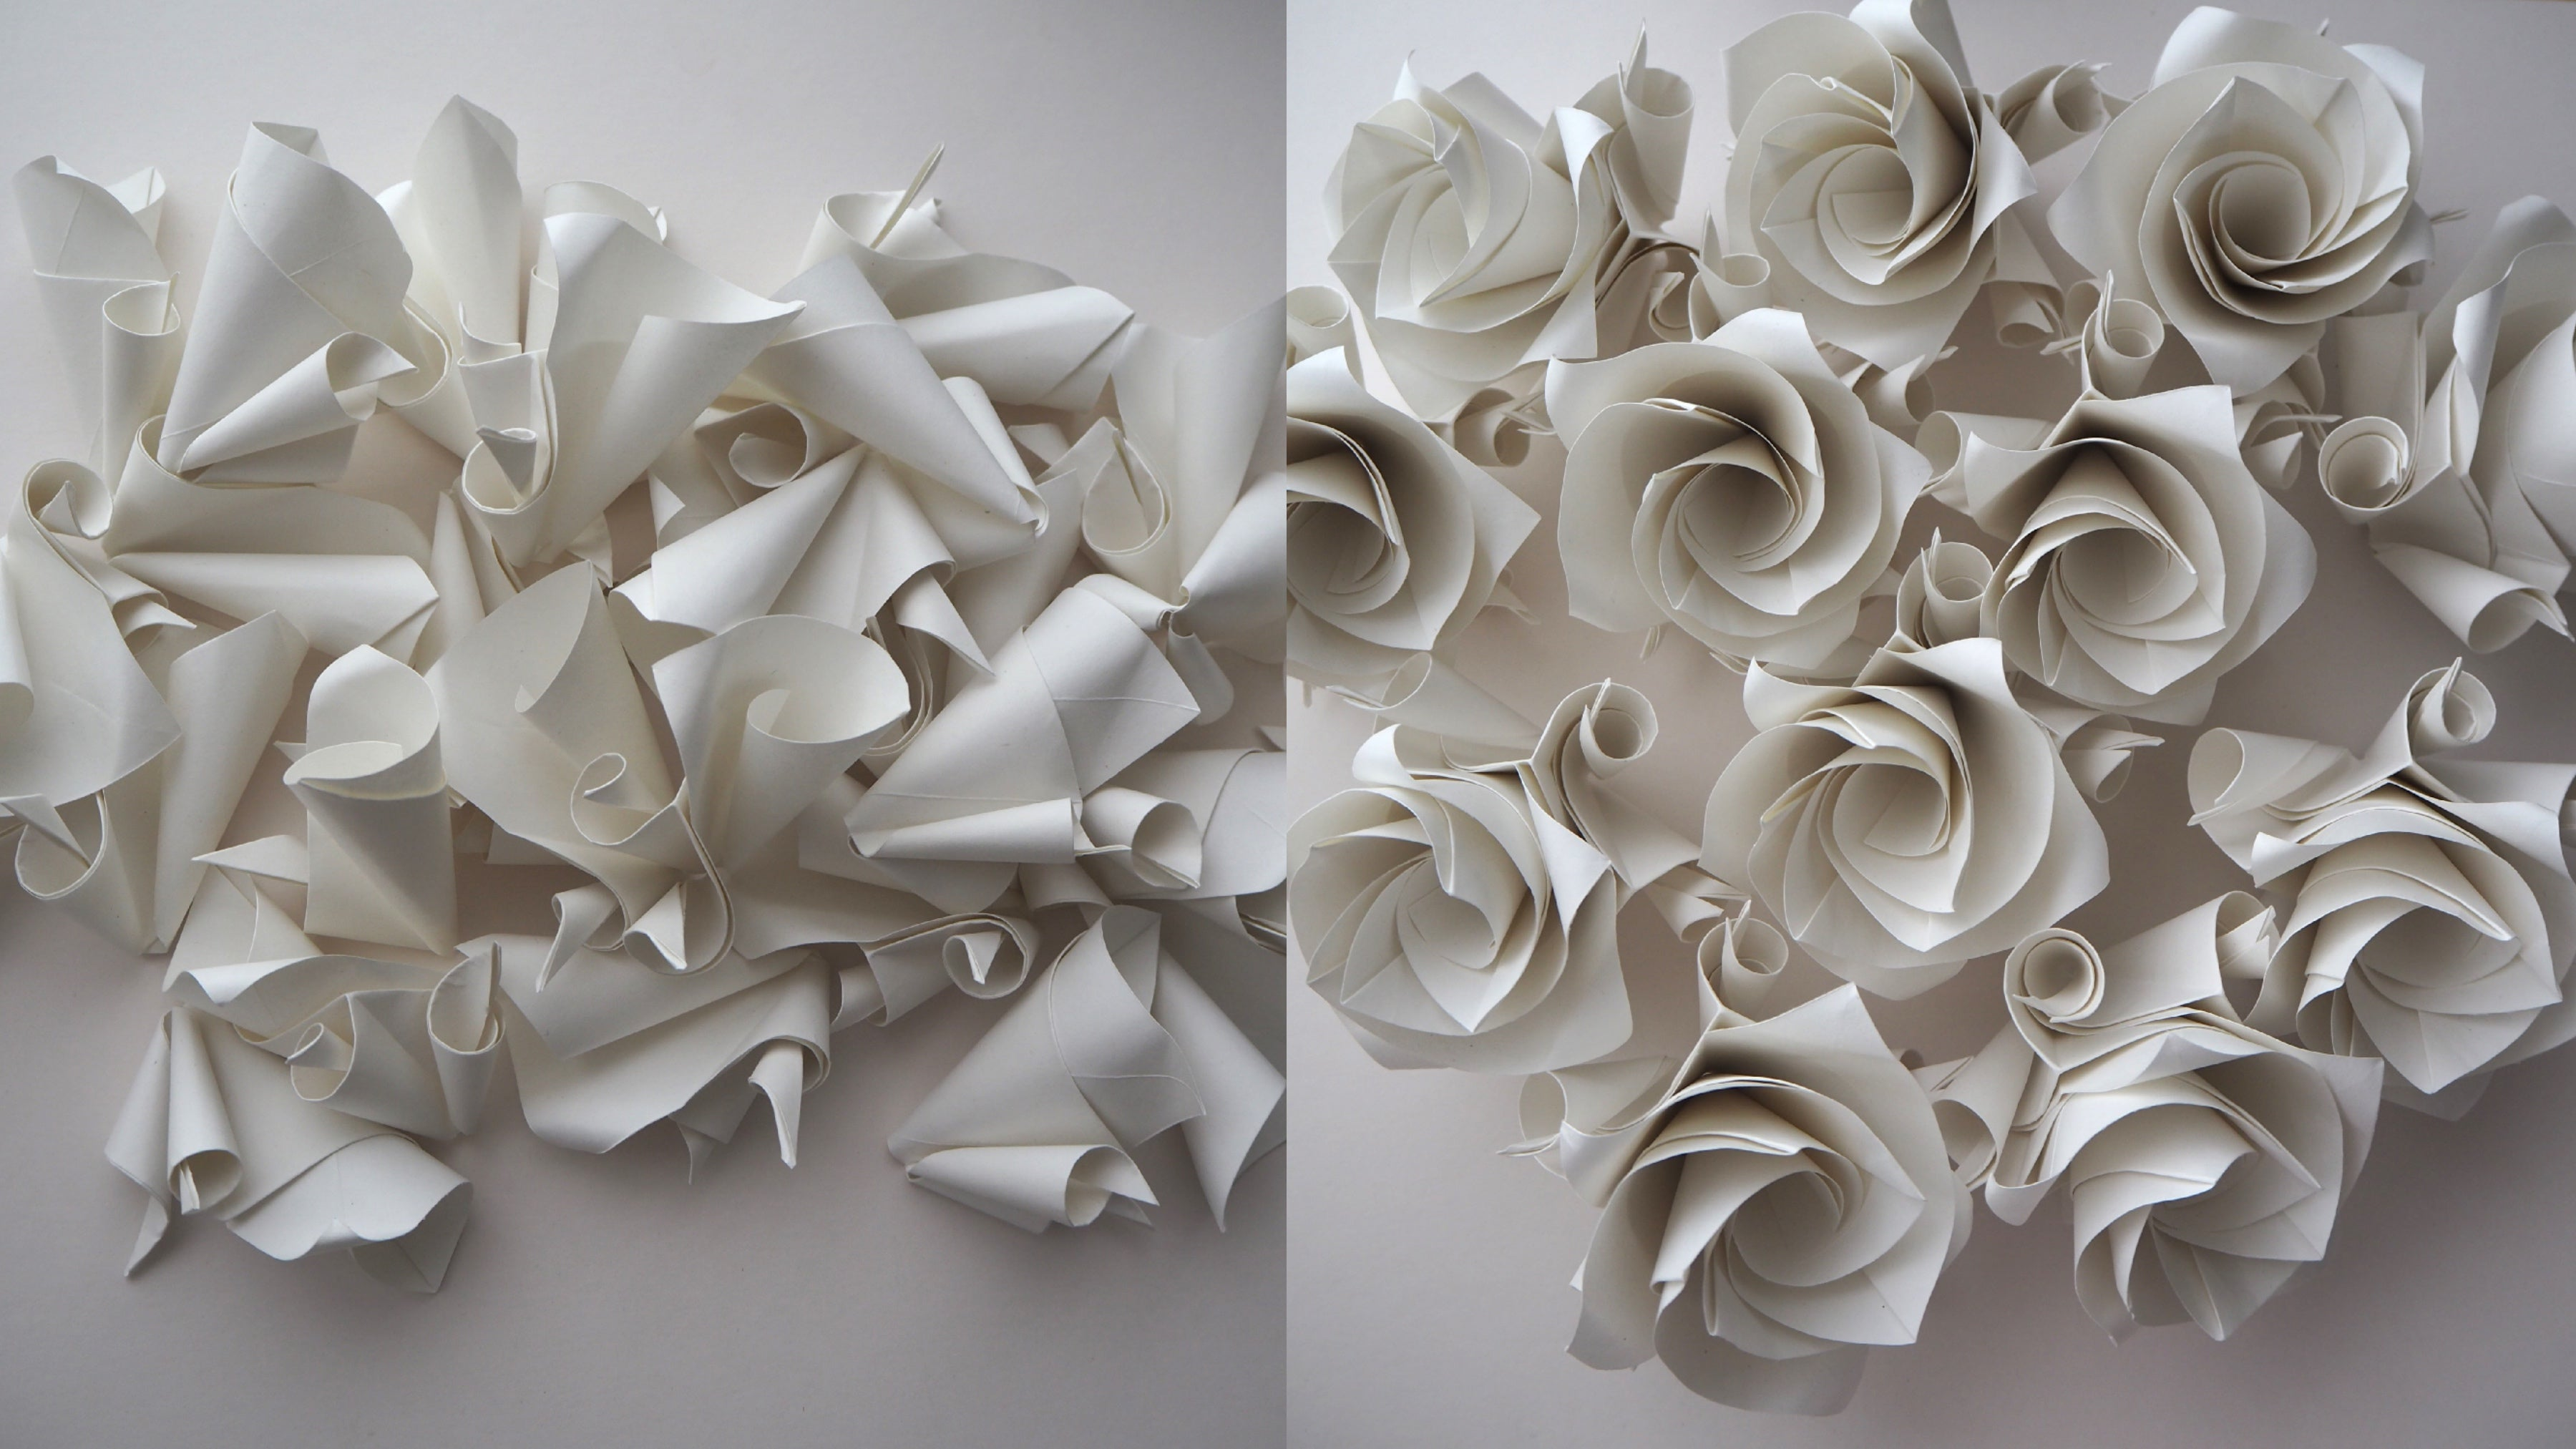 handmade white origami rose versailles wedding favours and decorations